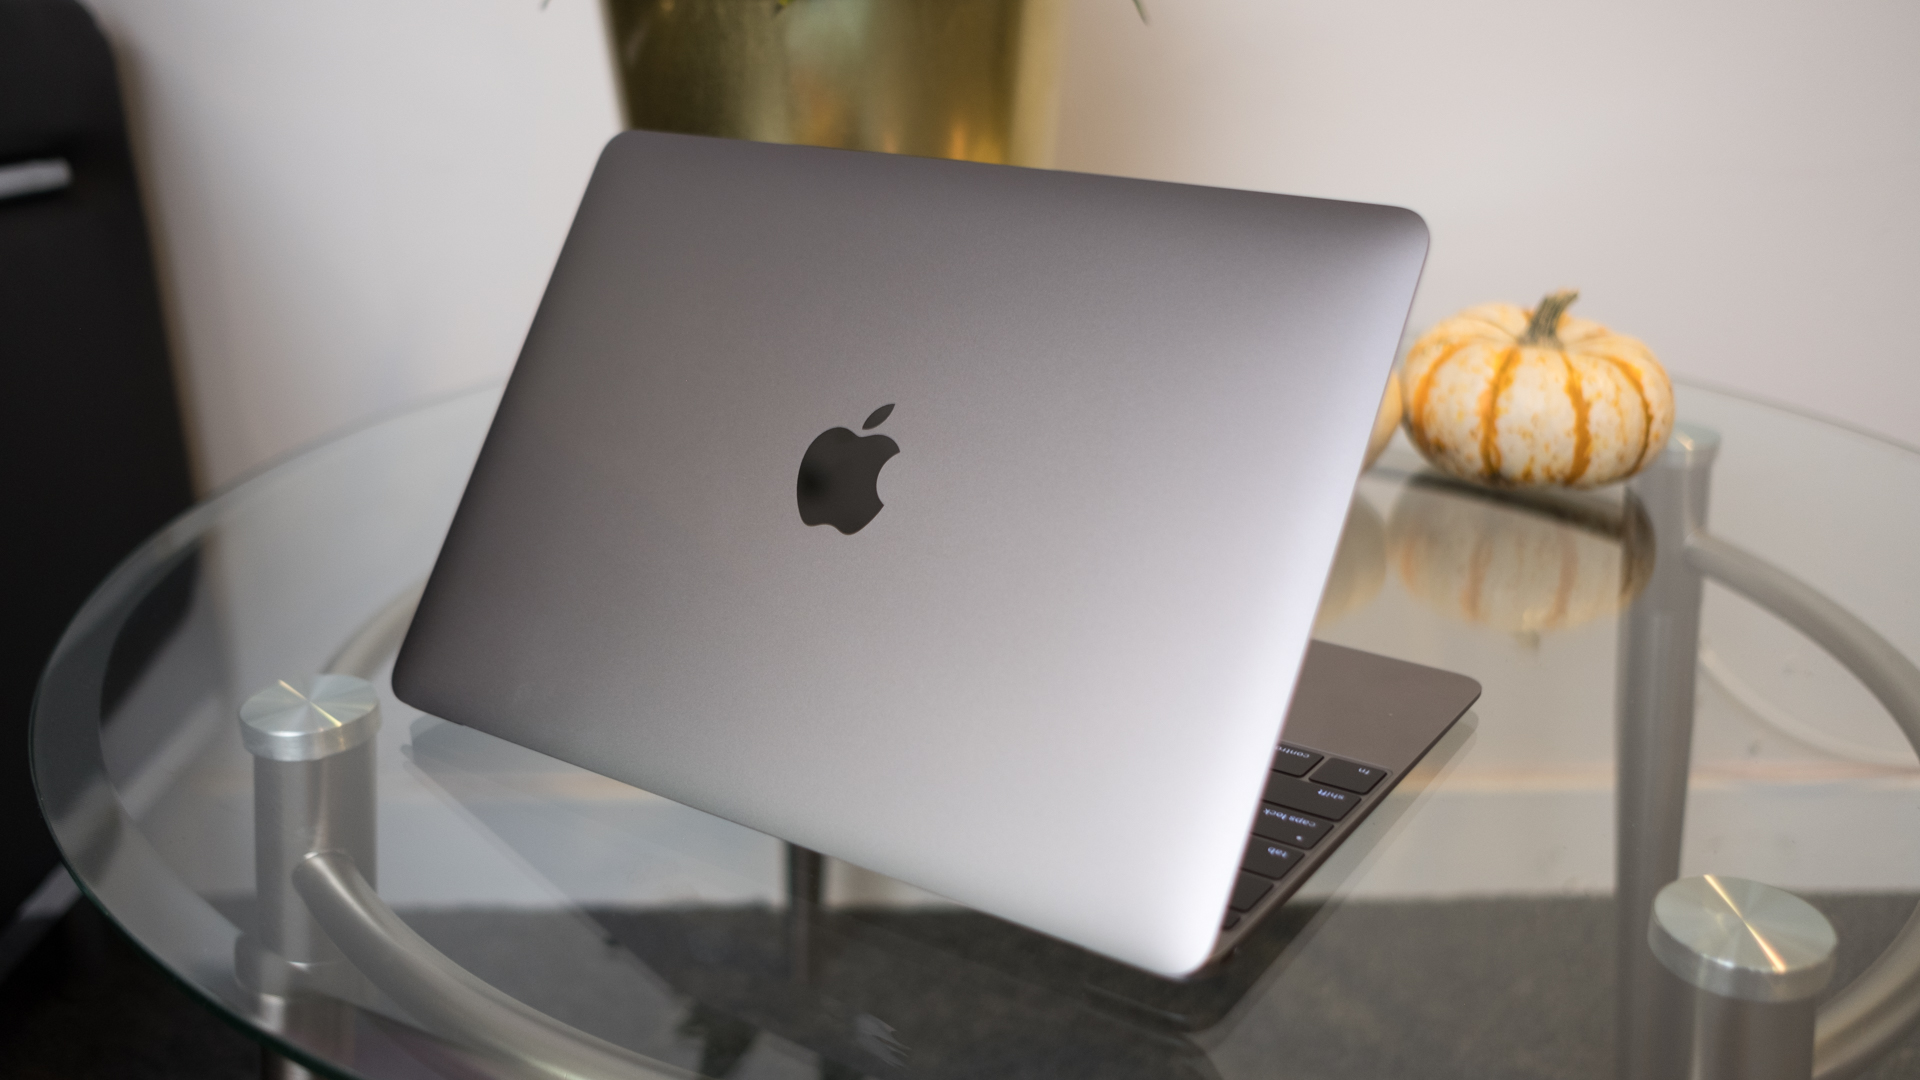 MacBook 2019 release date, news and rumors